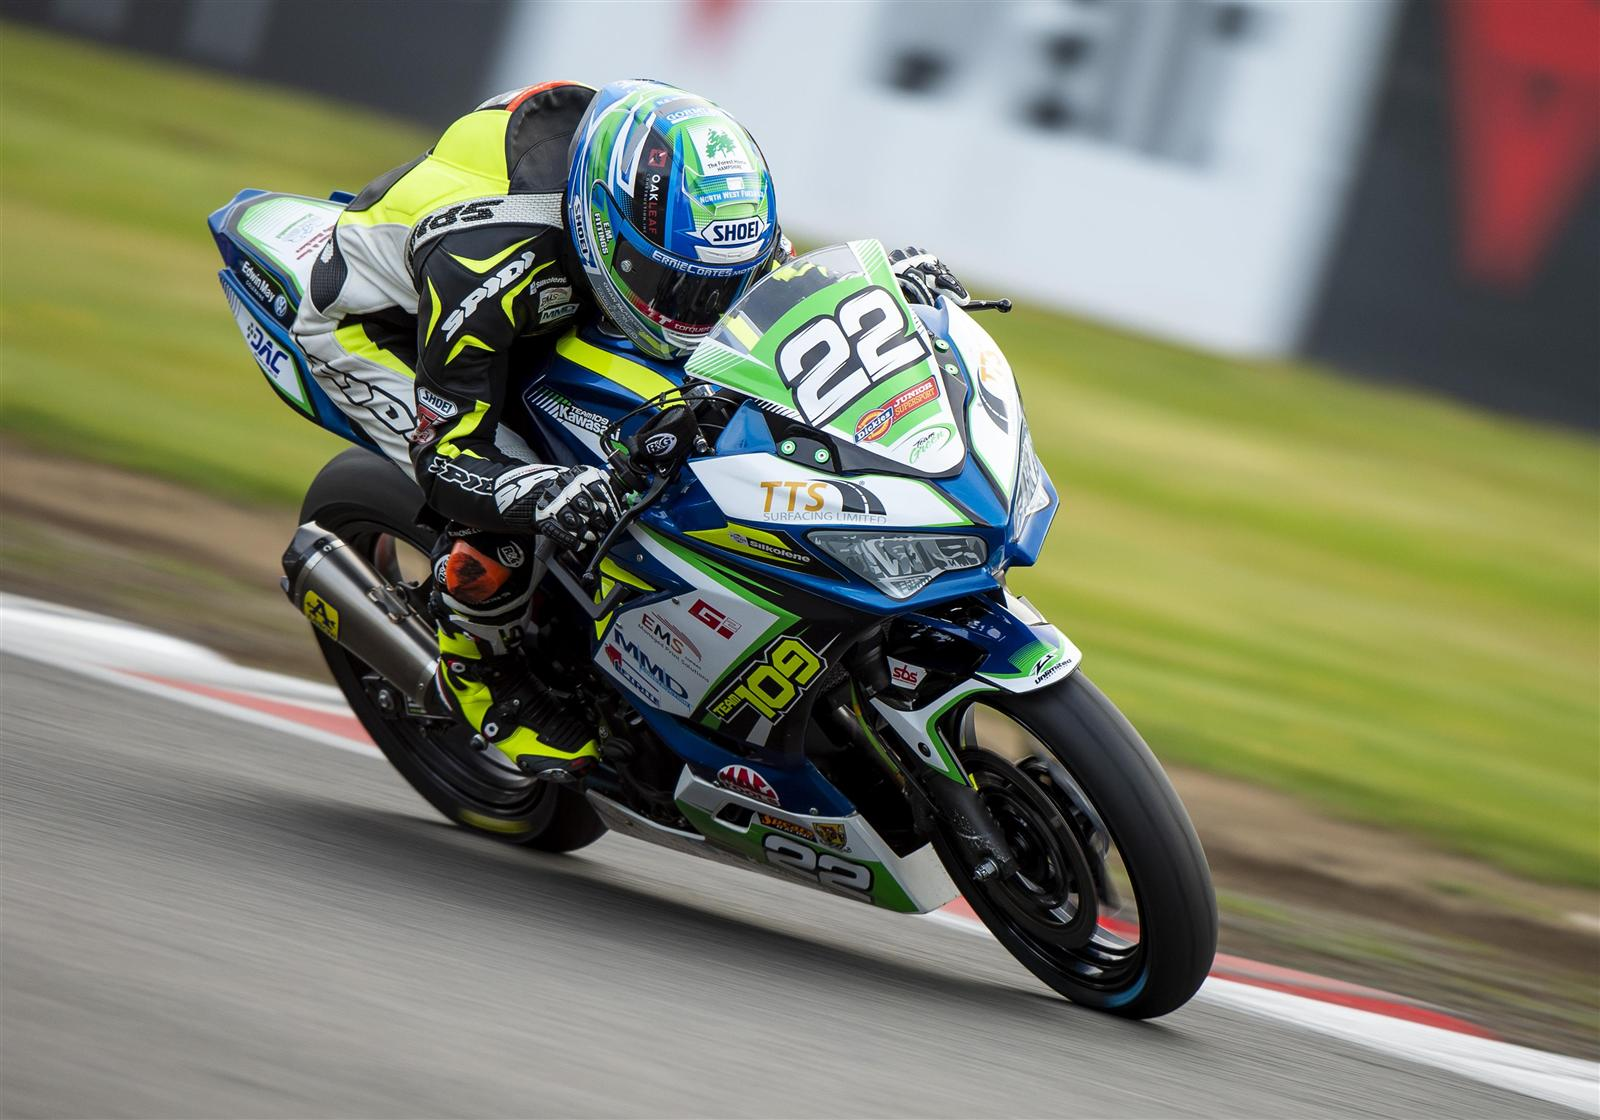 Team Green Backing Confirmed For Team 109 Kawasaki In 2019 British Superbike Championship